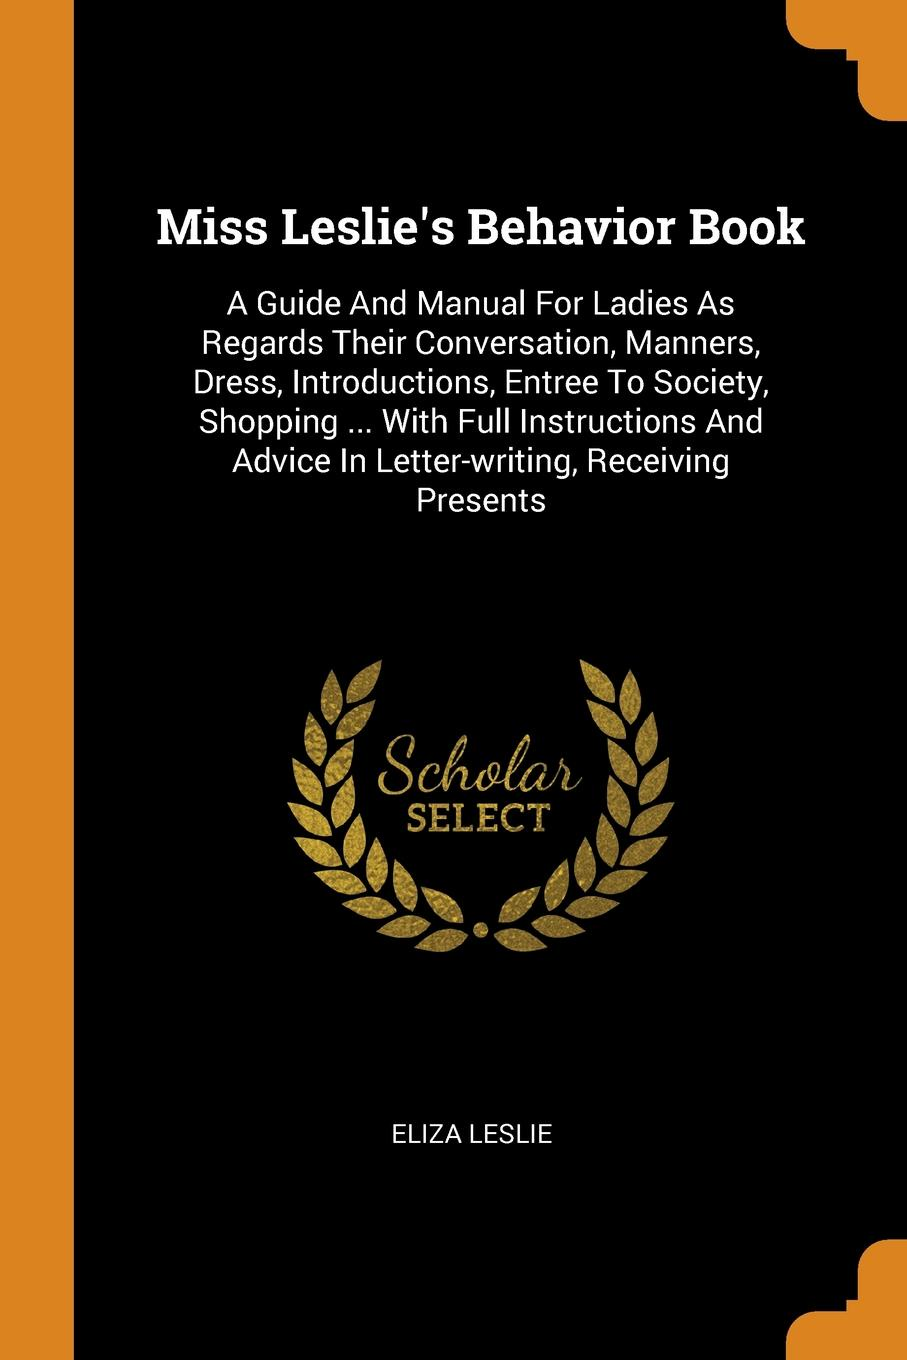 Miss Leslie.s Behavior Book. A Guide And Manual For Ladies As Regards Their Conversation, Manners, Dress, Introductions, Entree To Society, Shopping ... With Full Instructions And Advice In Letter-writing, Receiving Presents